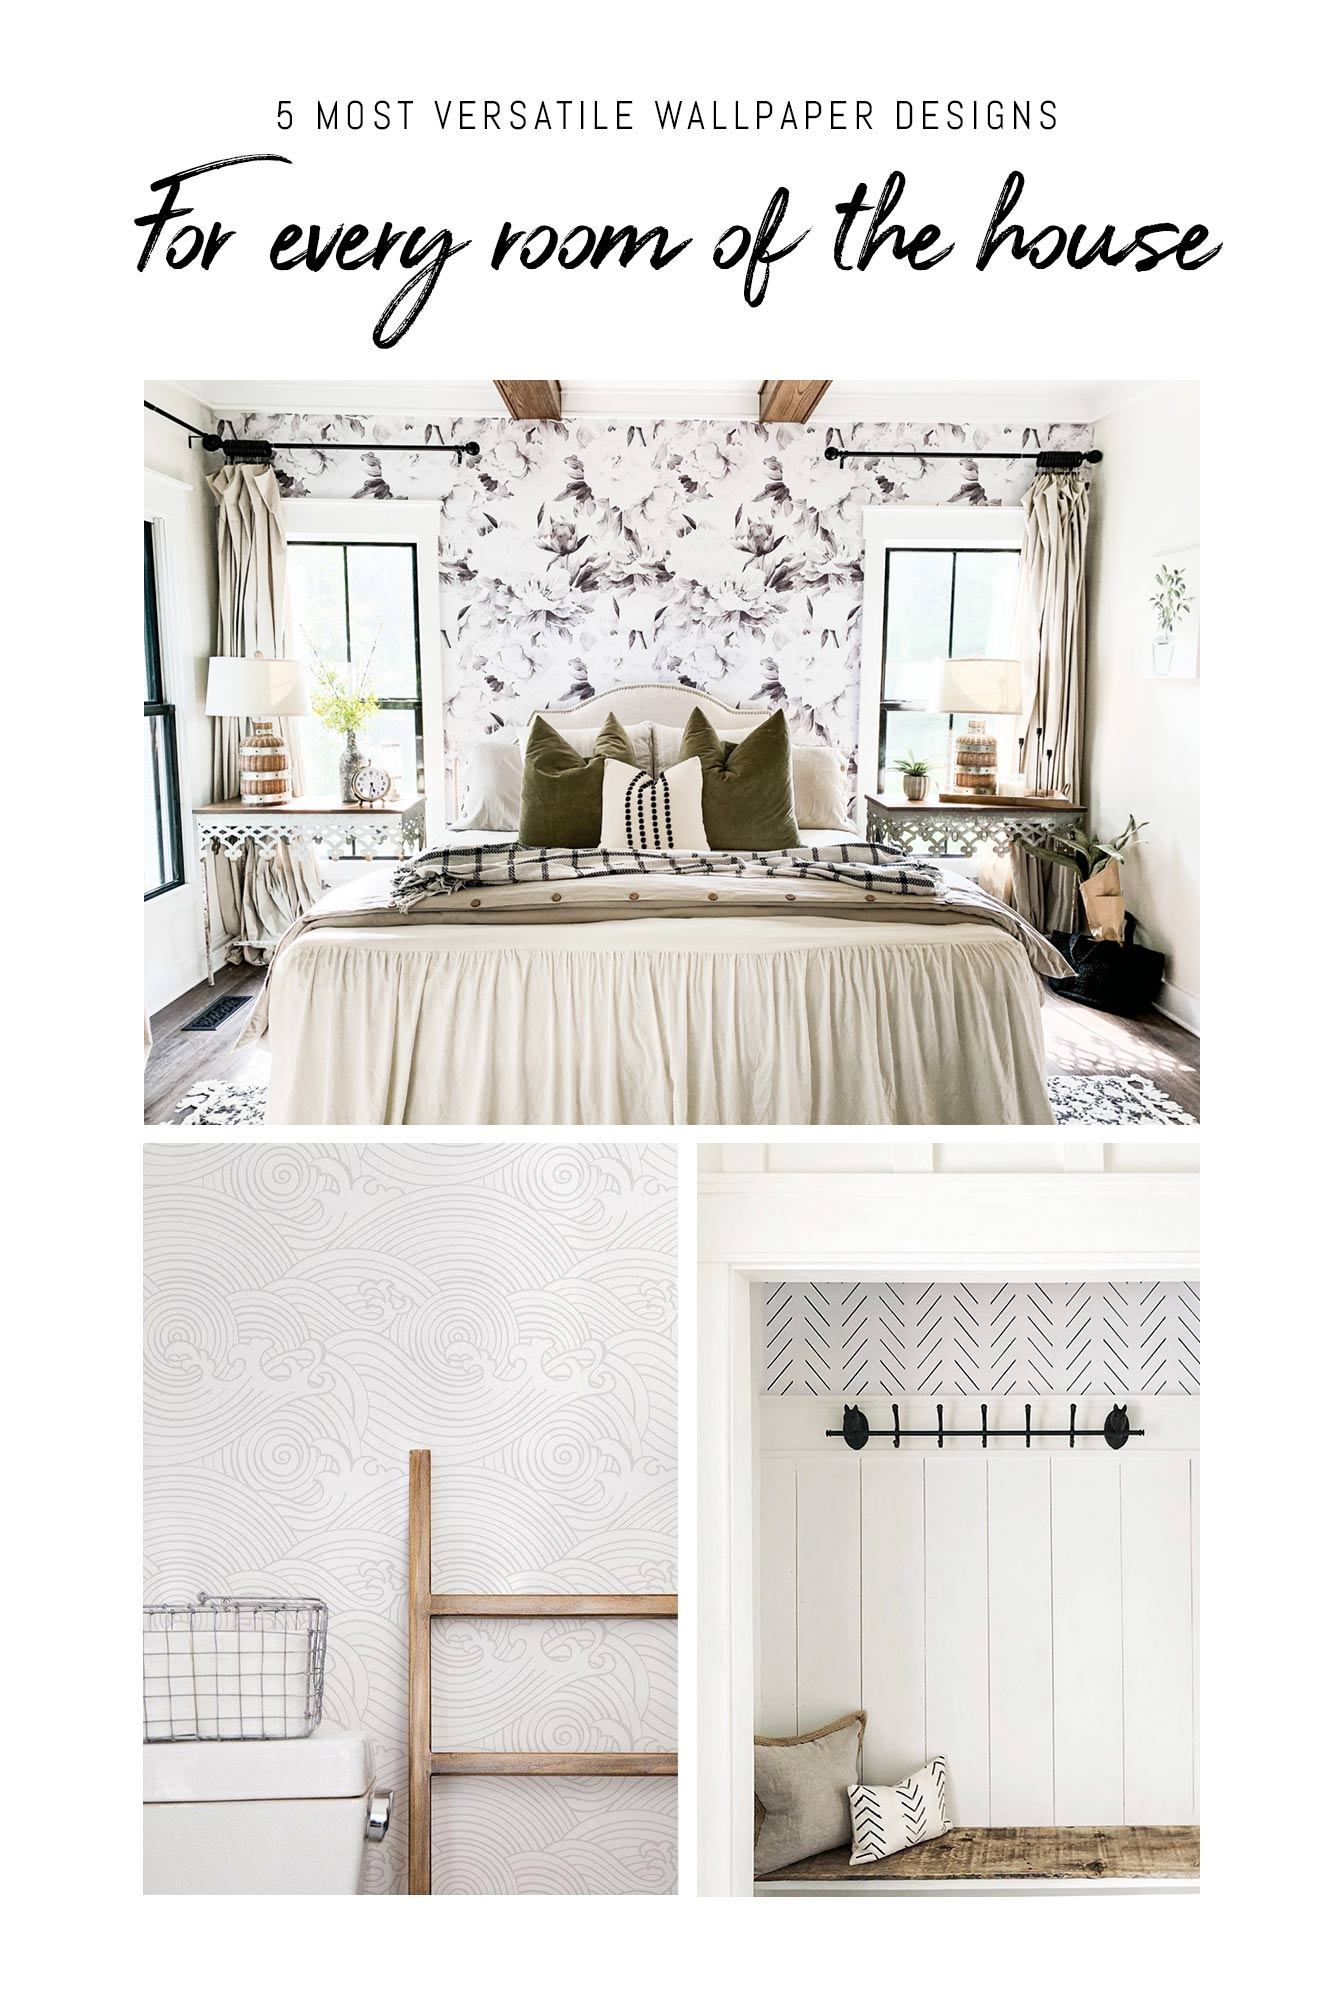 Modern farmhouse style wallpaper ideas for home interior